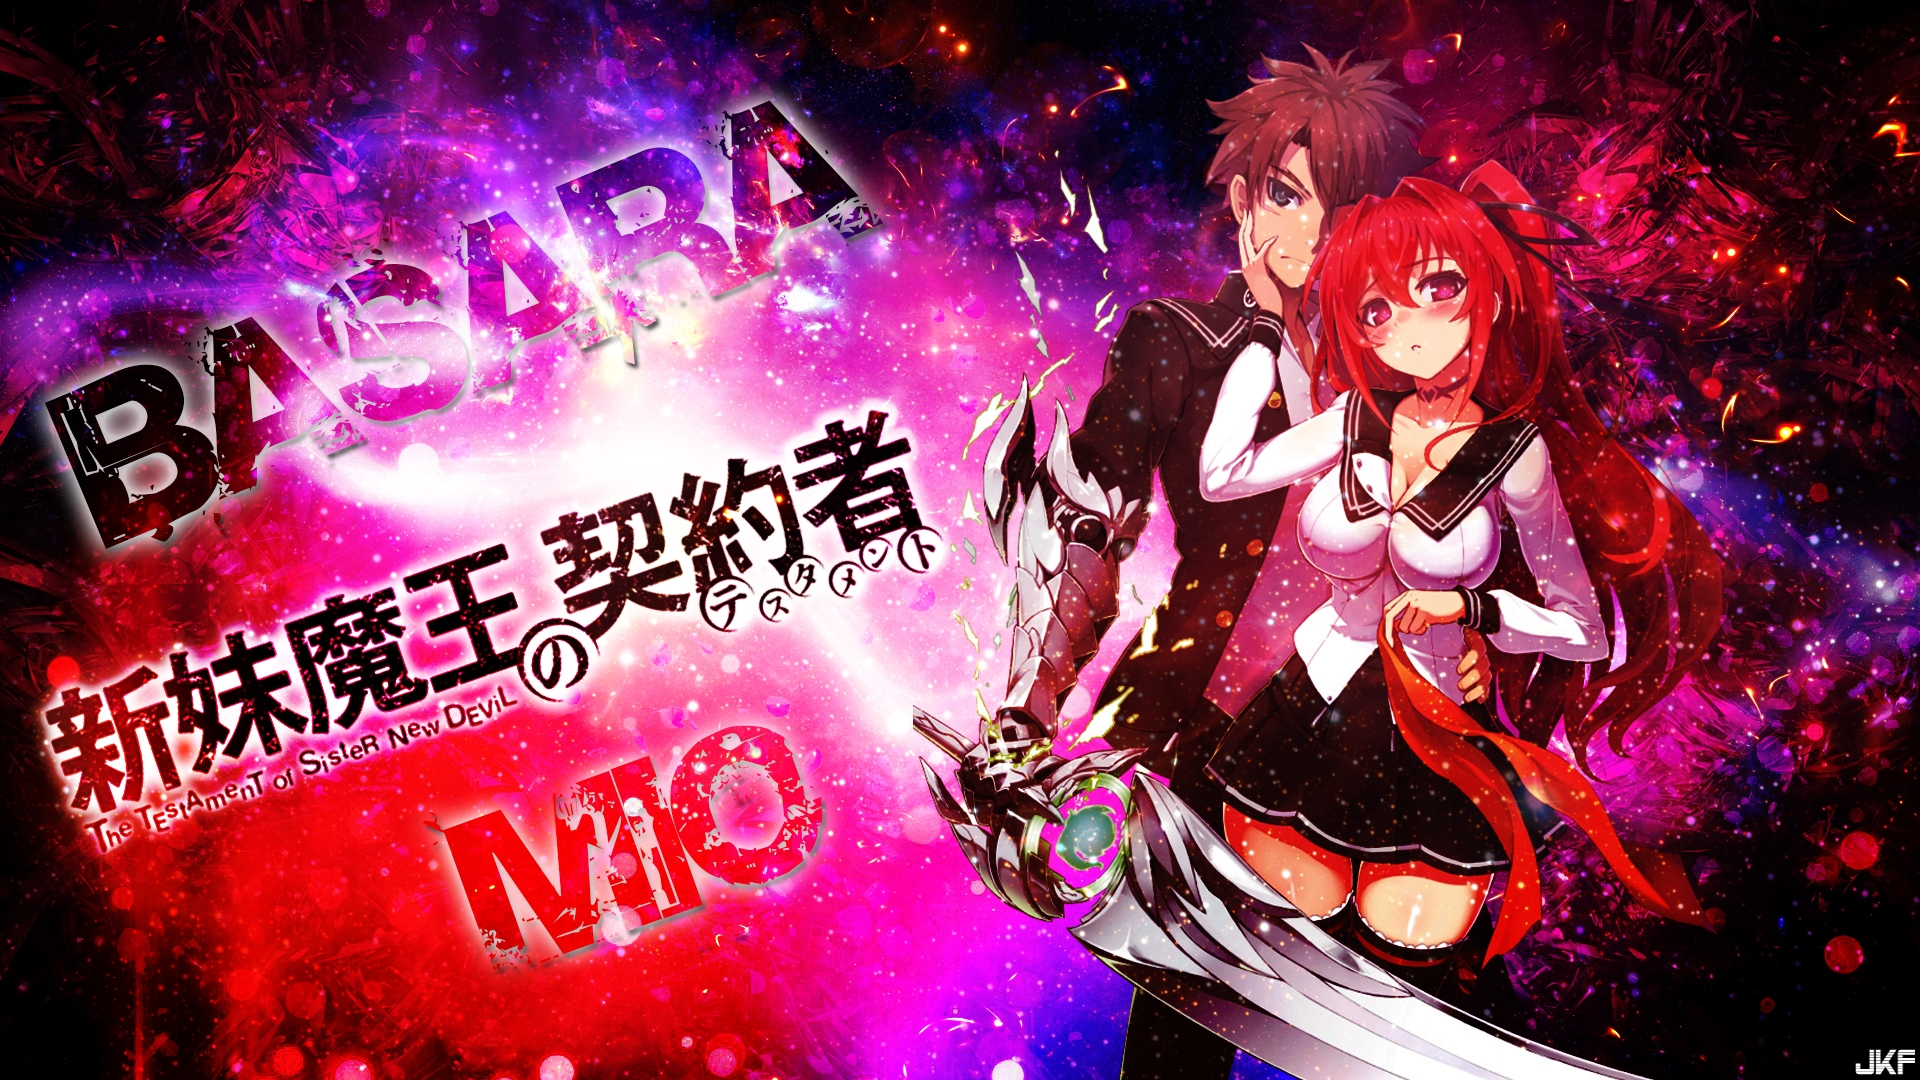 basara_mio_wallpaper_by_dinocojv-d8qj5ri.jpg